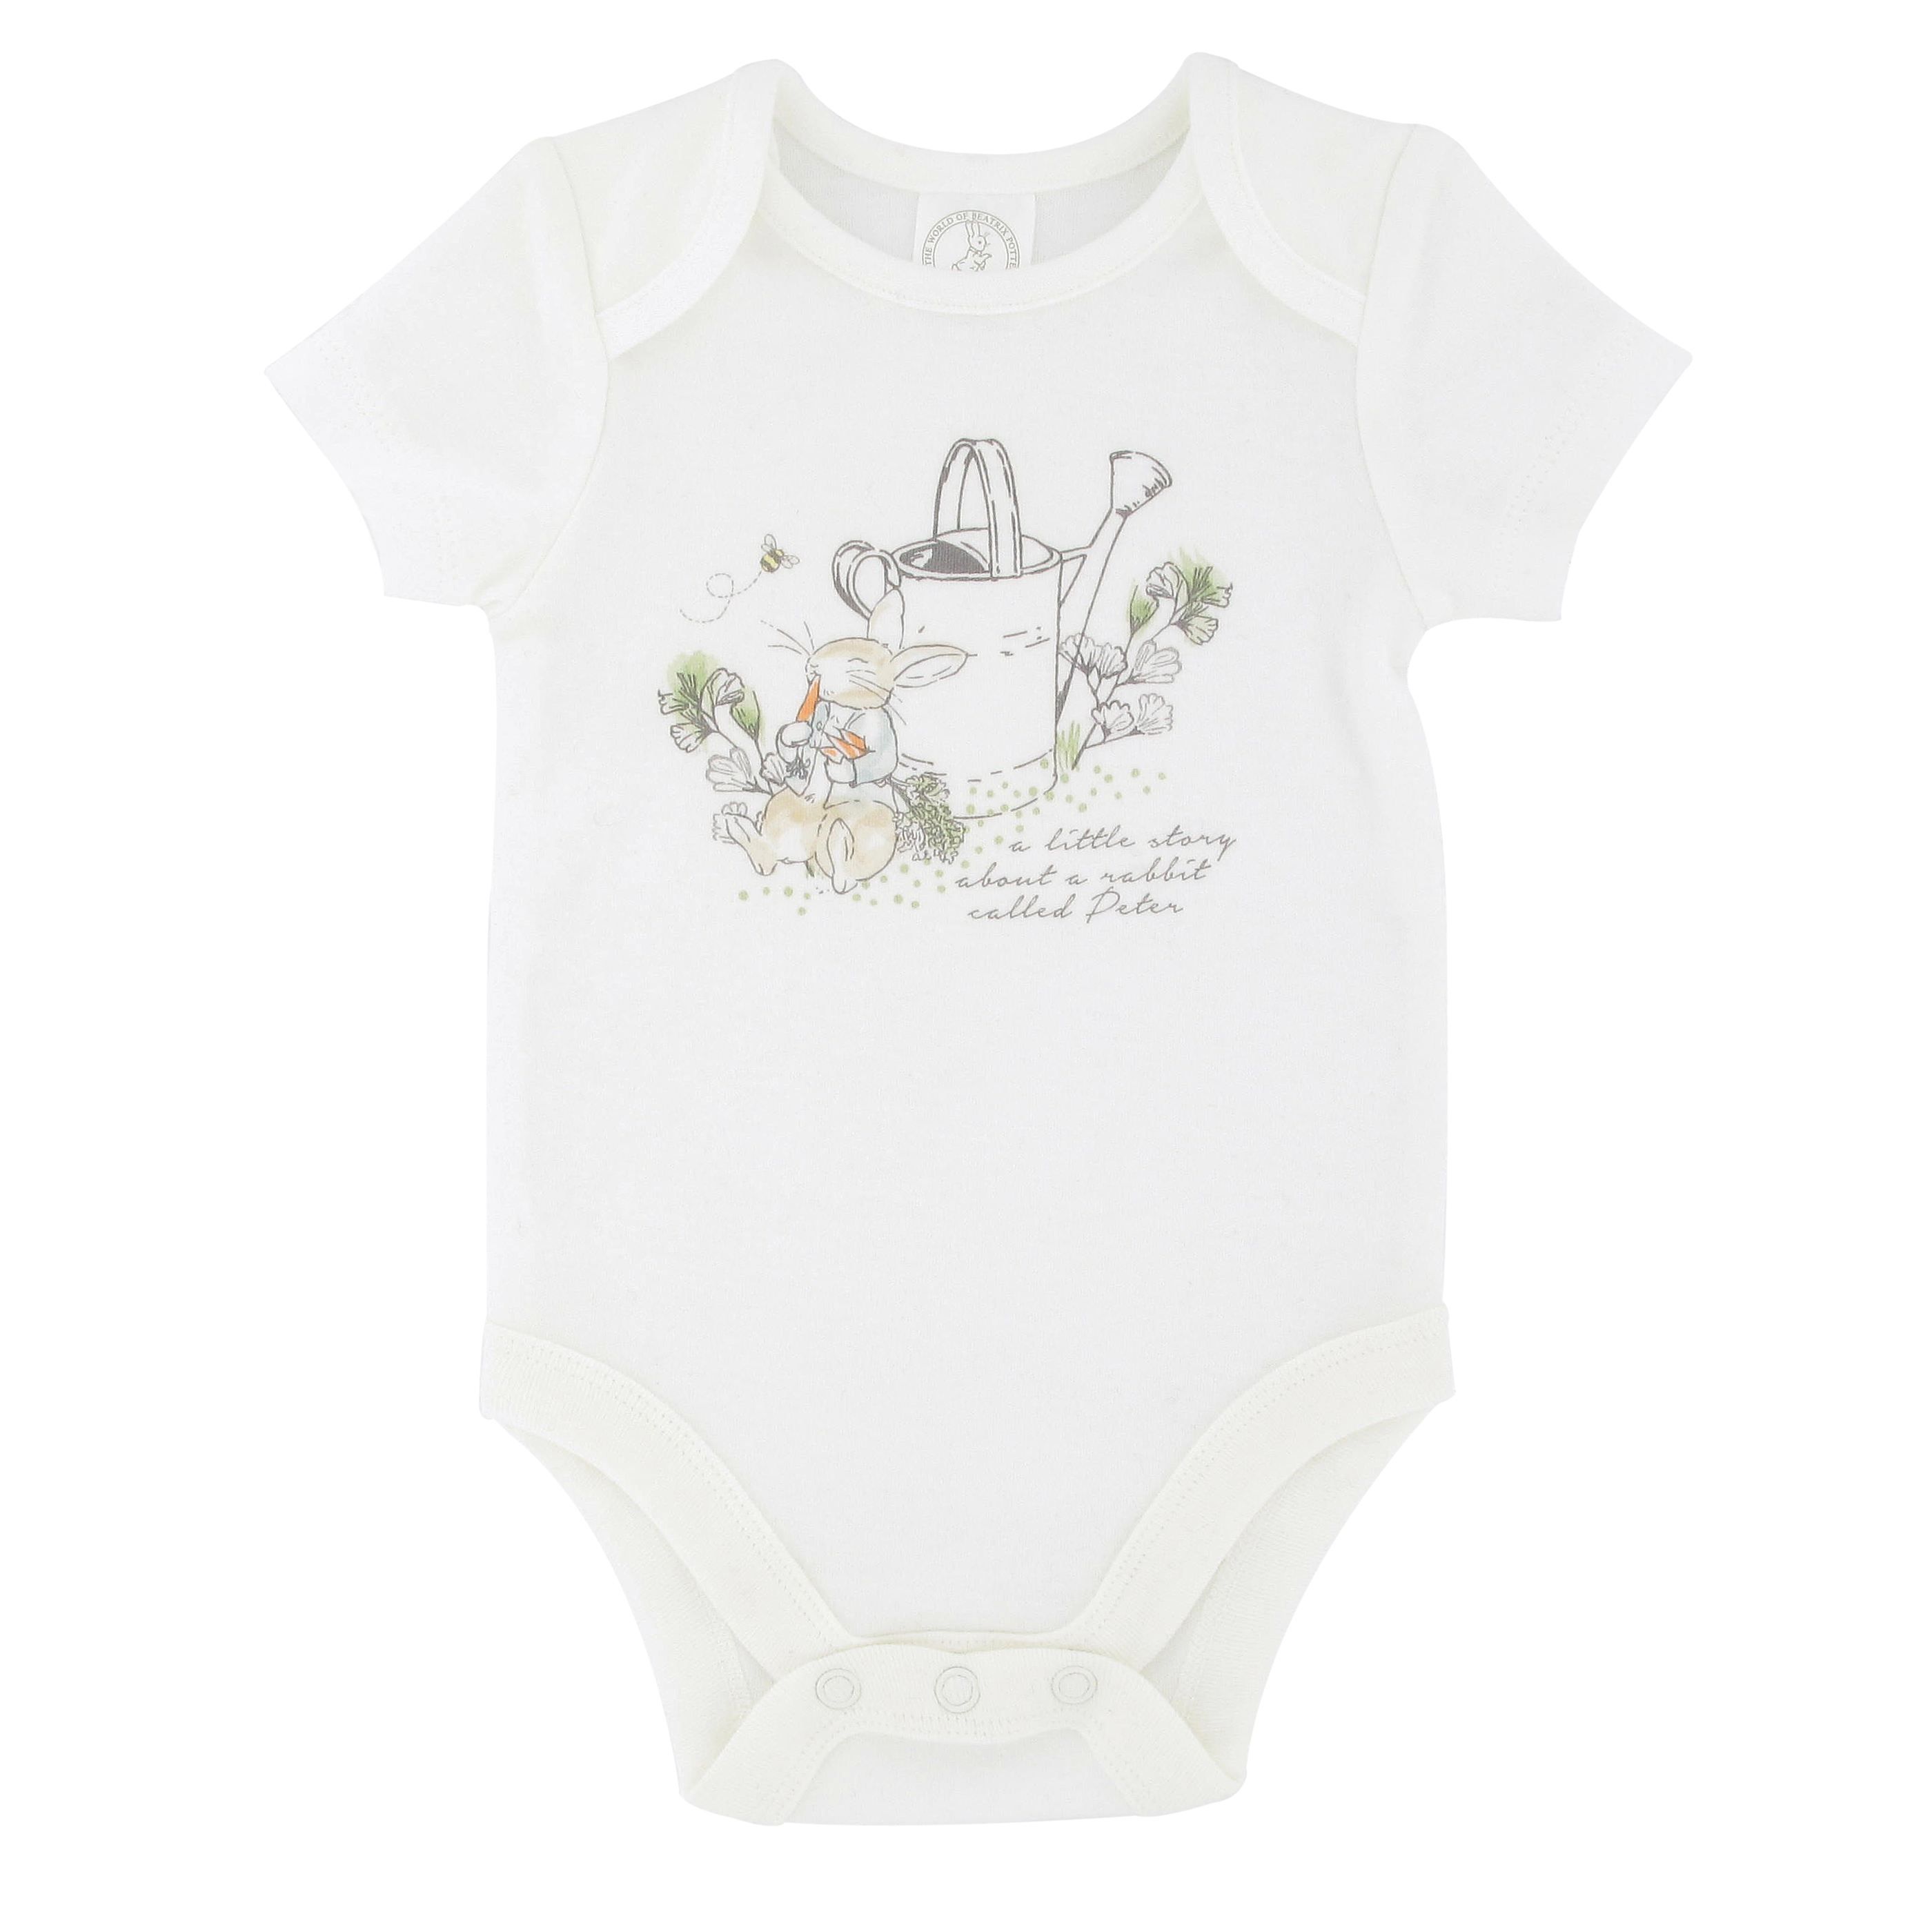 Peter Rabbit babygrow